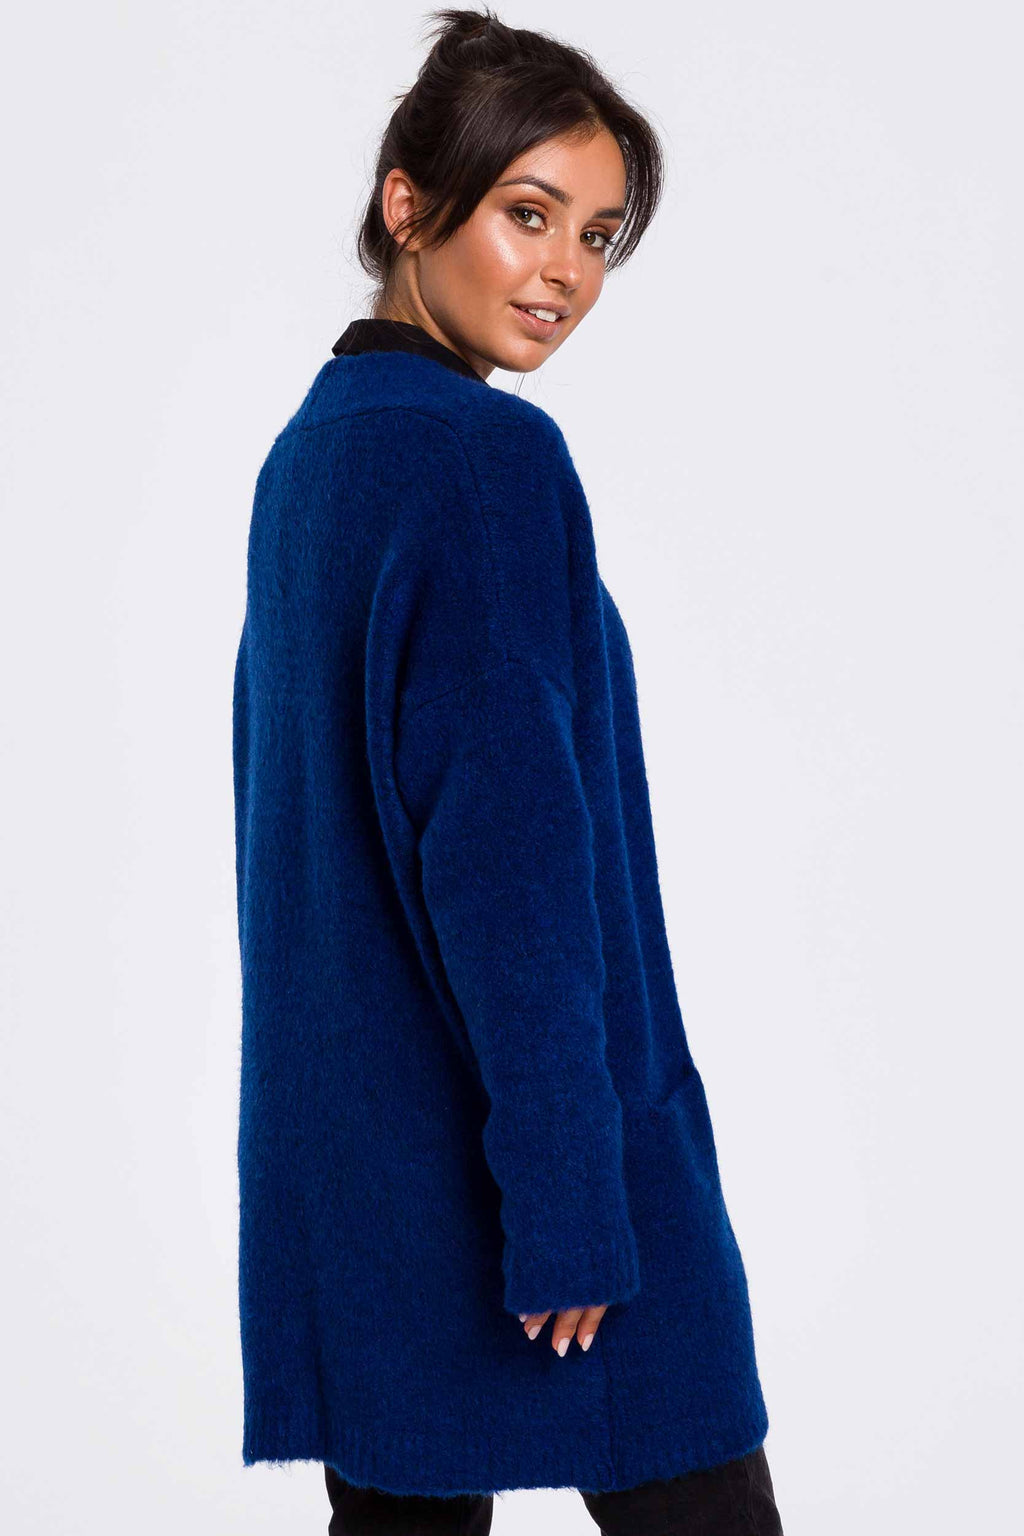 Blue Fuzzy Cardigan With Pockets - So Chic Boutique